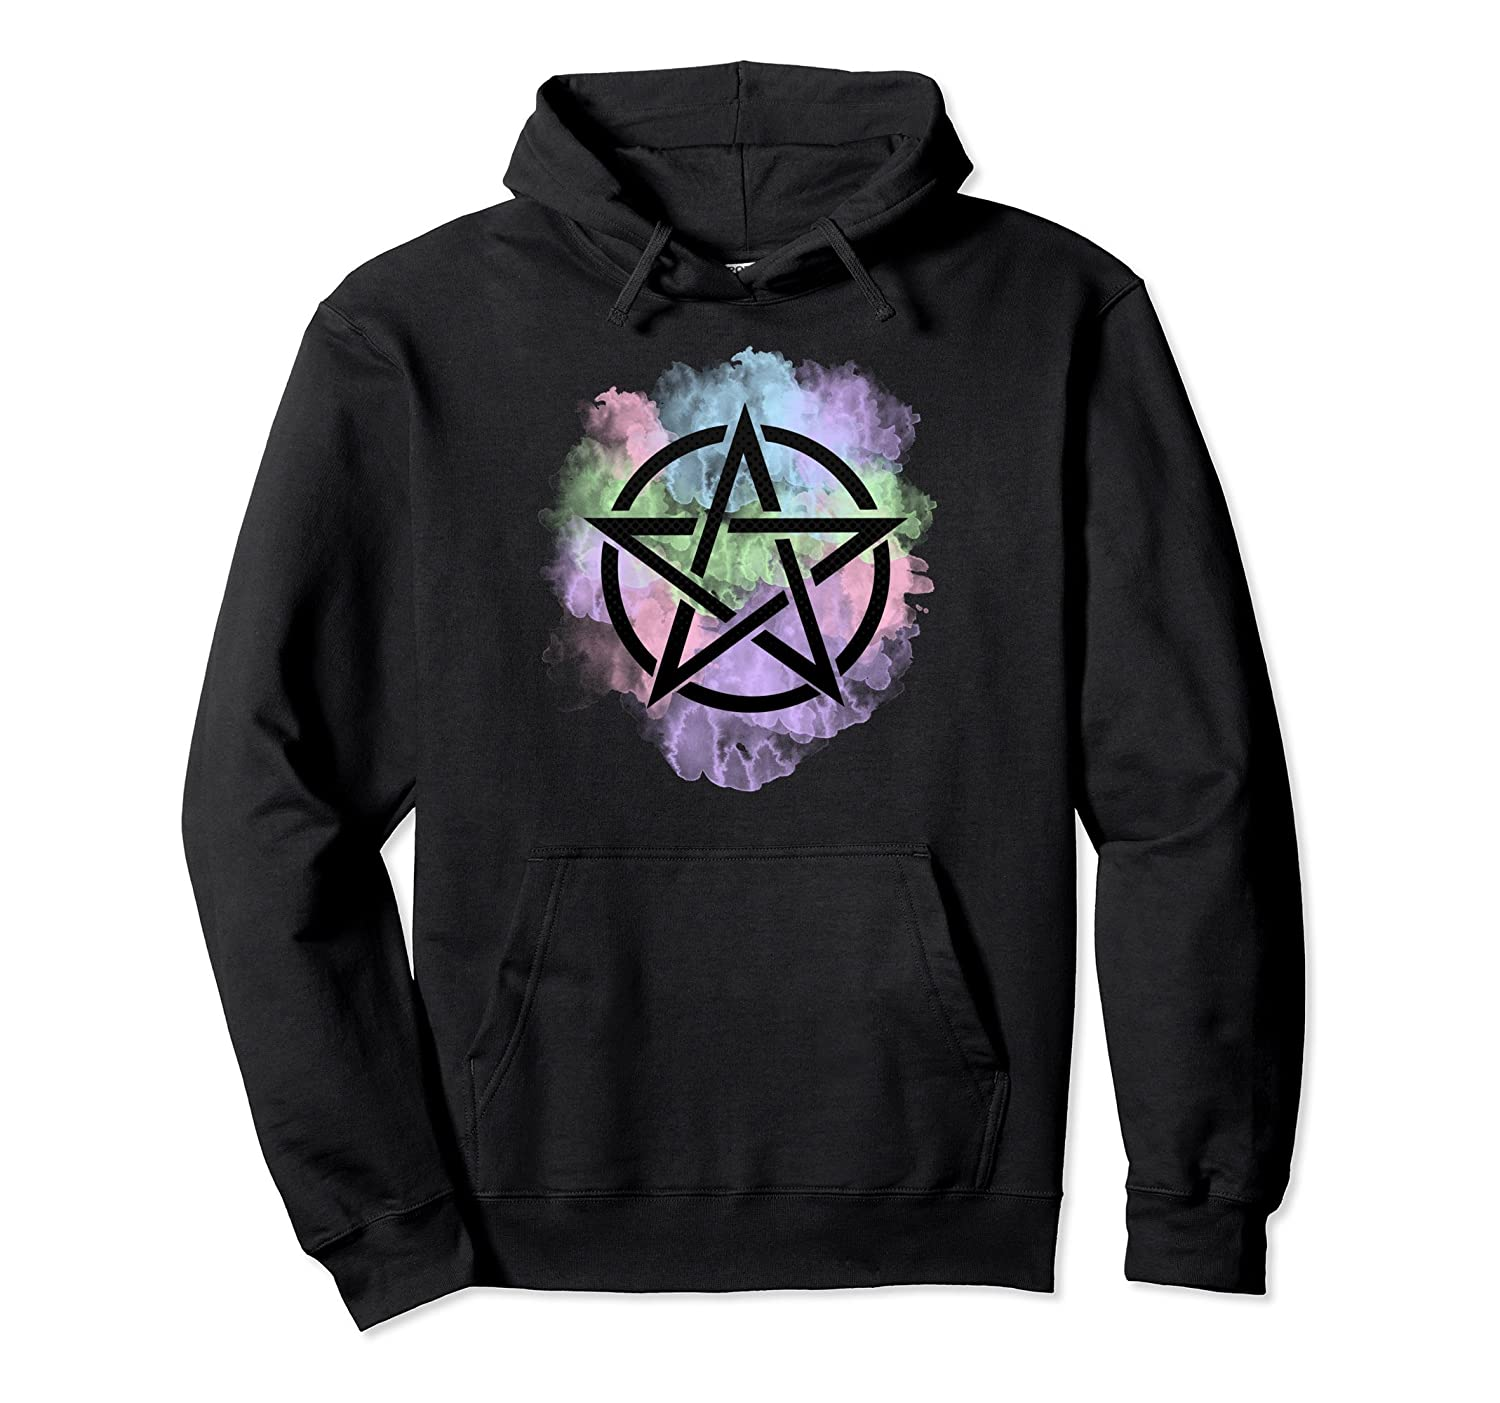 Pastel Goth Hoodie, Aesthetic Clothing For Girls-mt